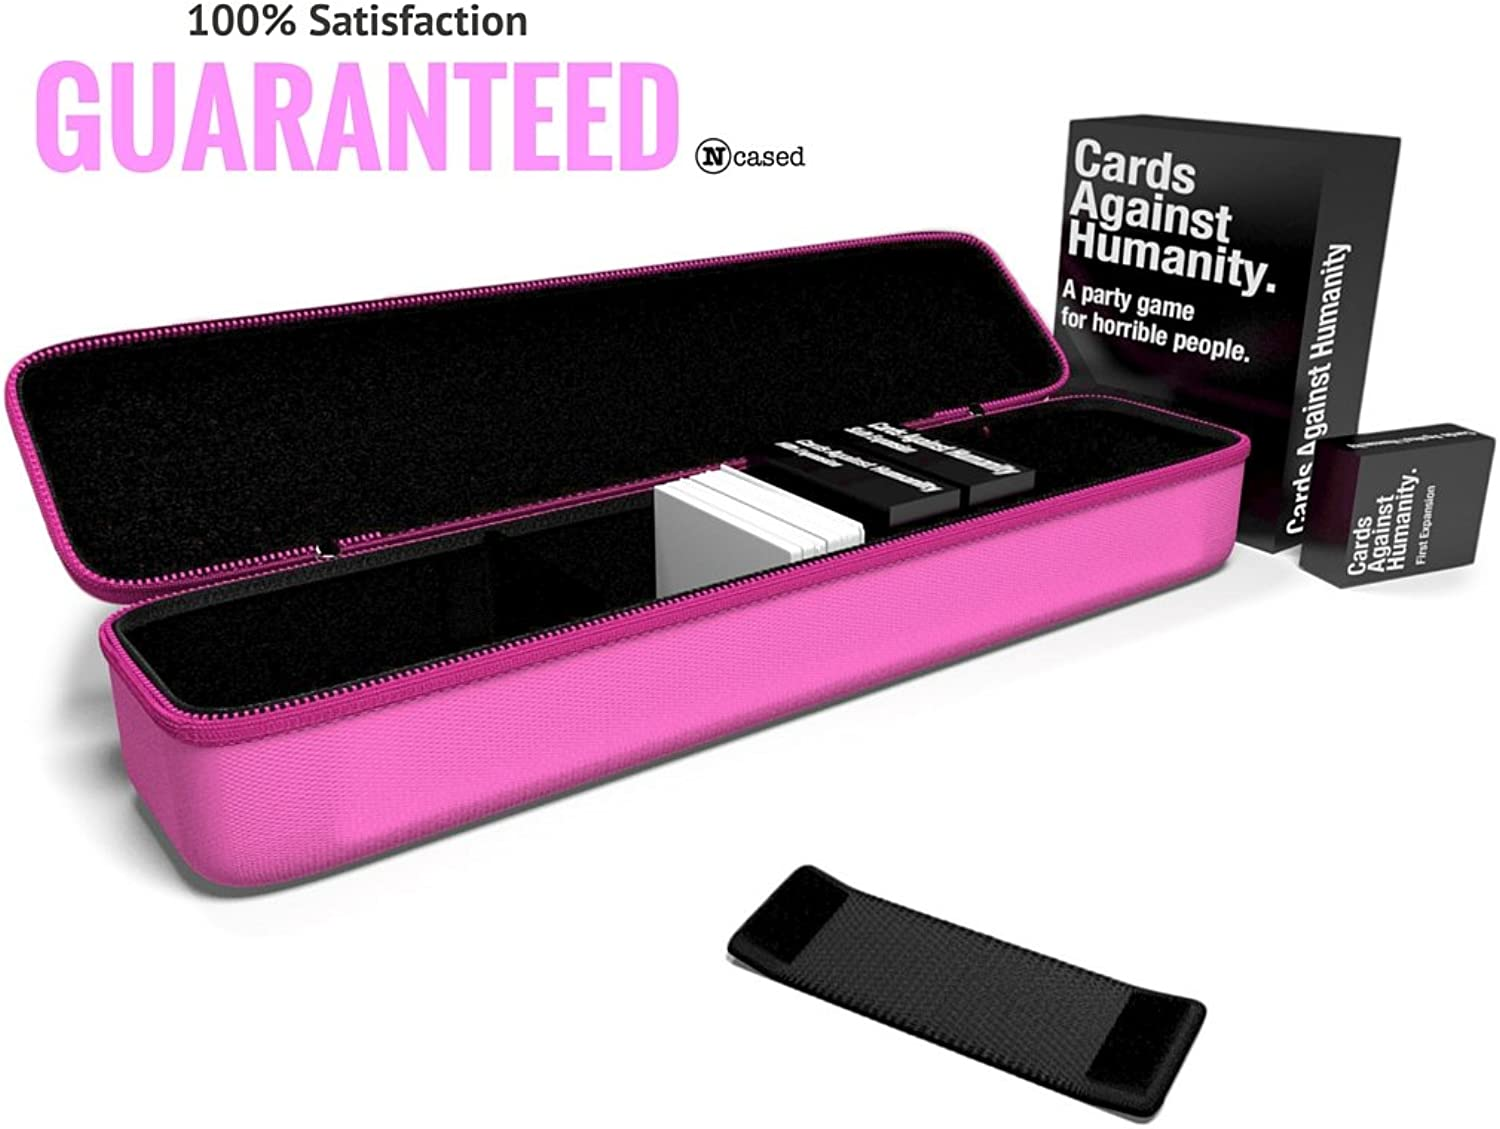 N Cased(TM) (Pink) Hard Case for C. A. H. Card Game, Large, Fits The Main Game + All 6 Expansions. Includes 5 Moveable Dividers. Fits About 1400 Cards.